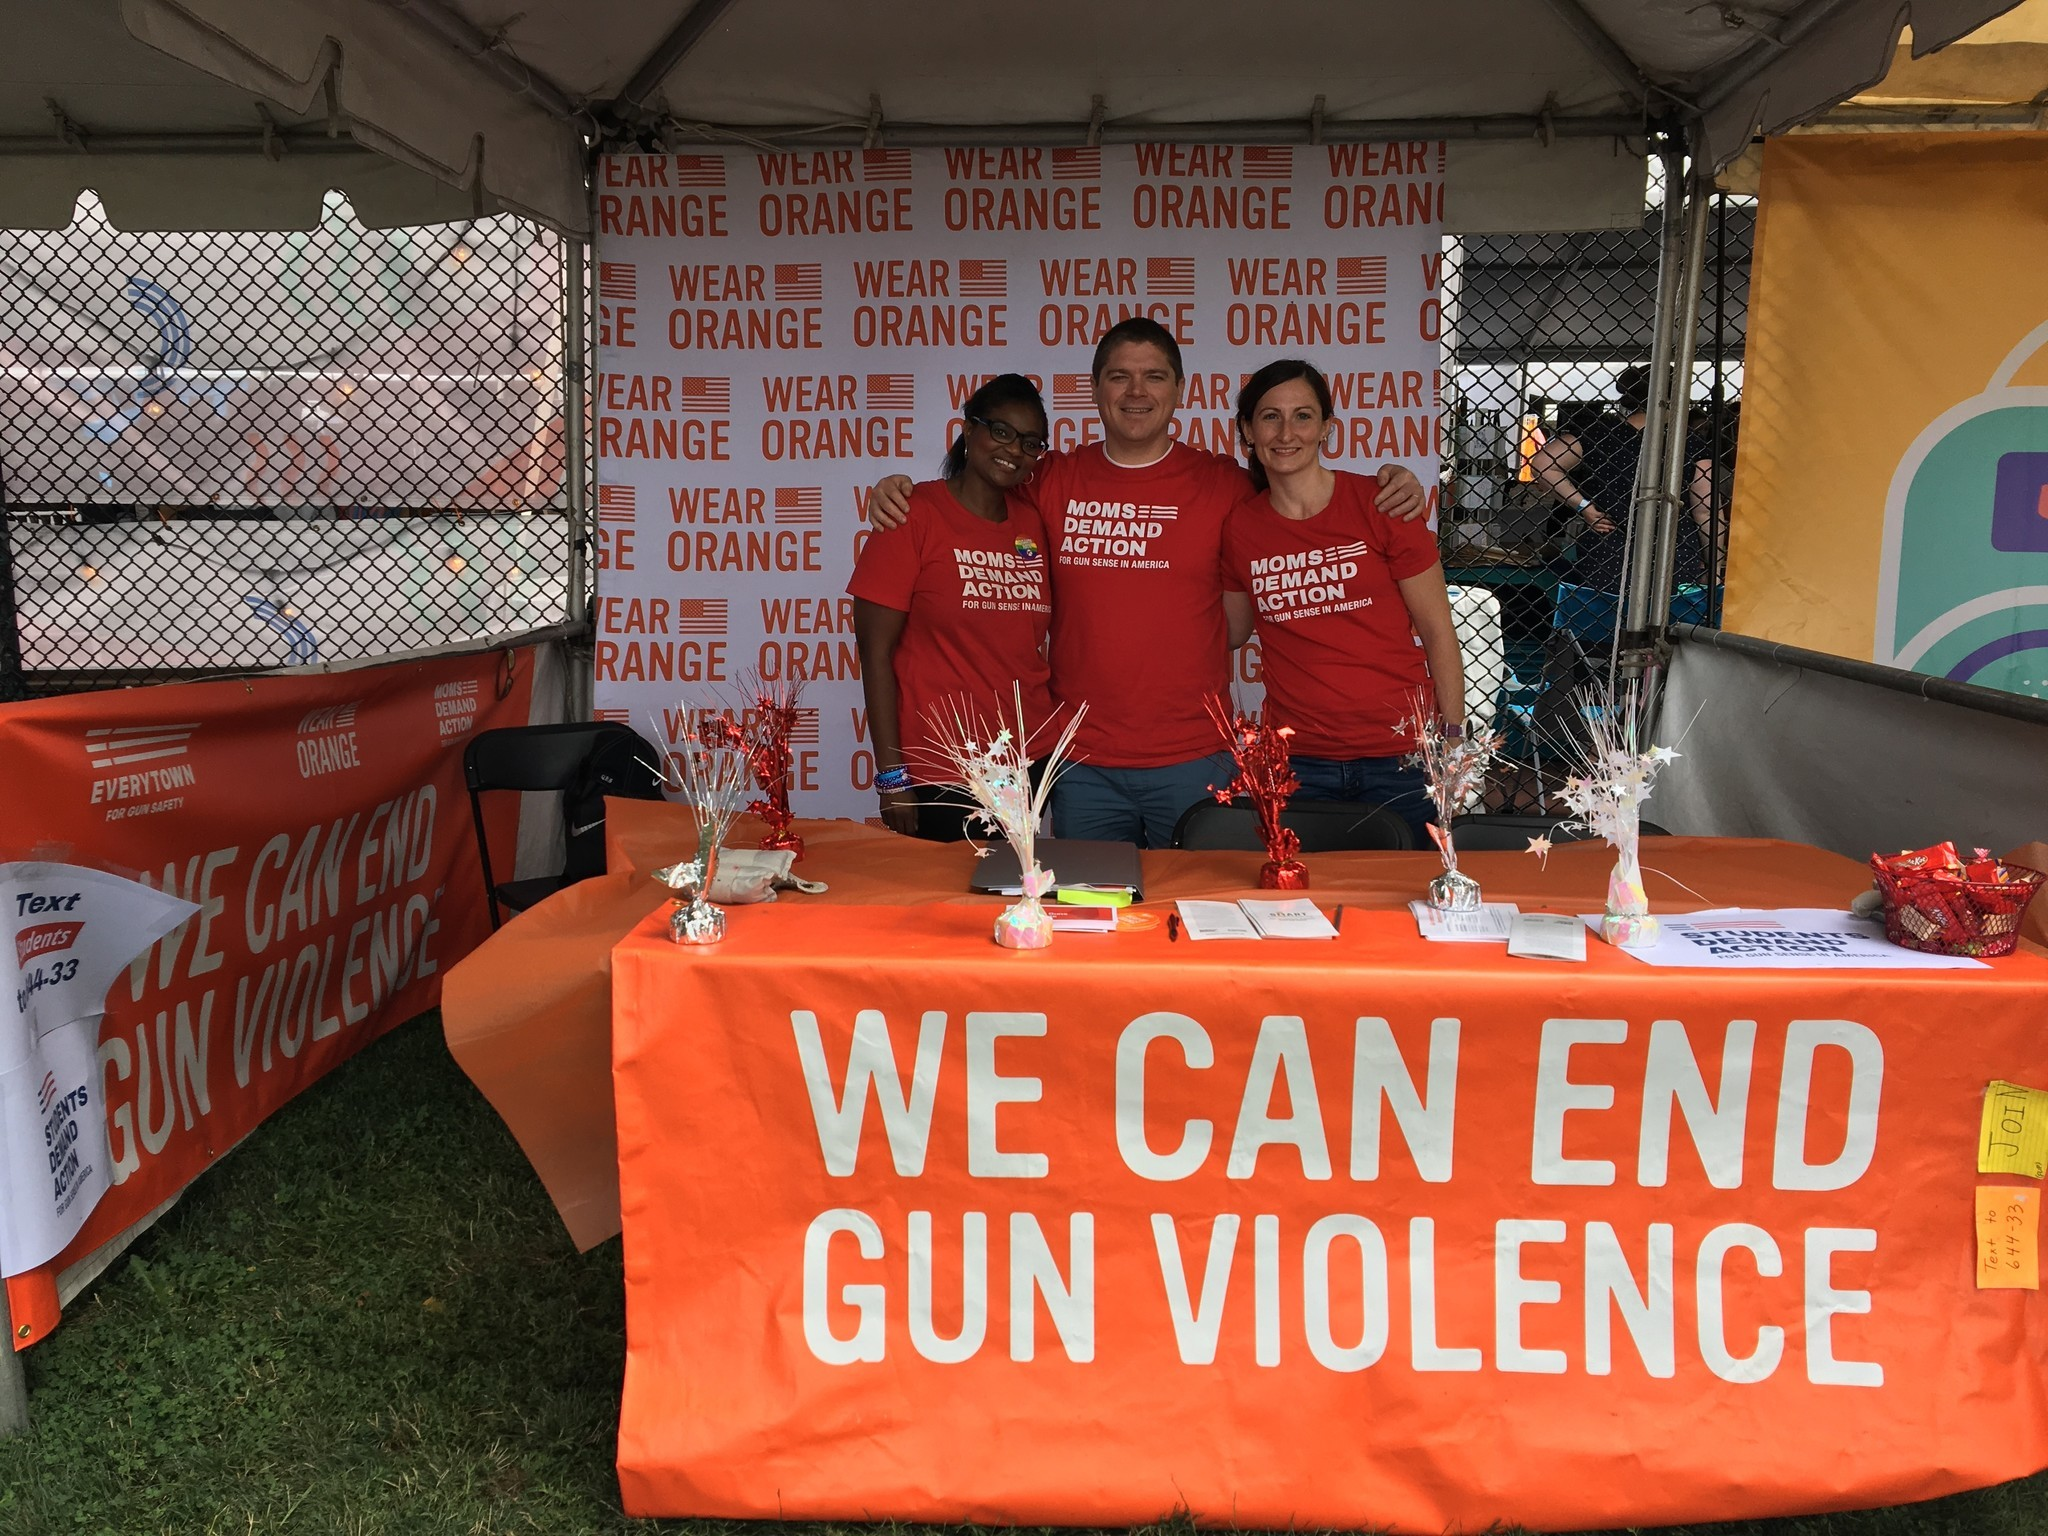 Chicago gun safety activists at Pitchfork look to reach Gov. Rauner